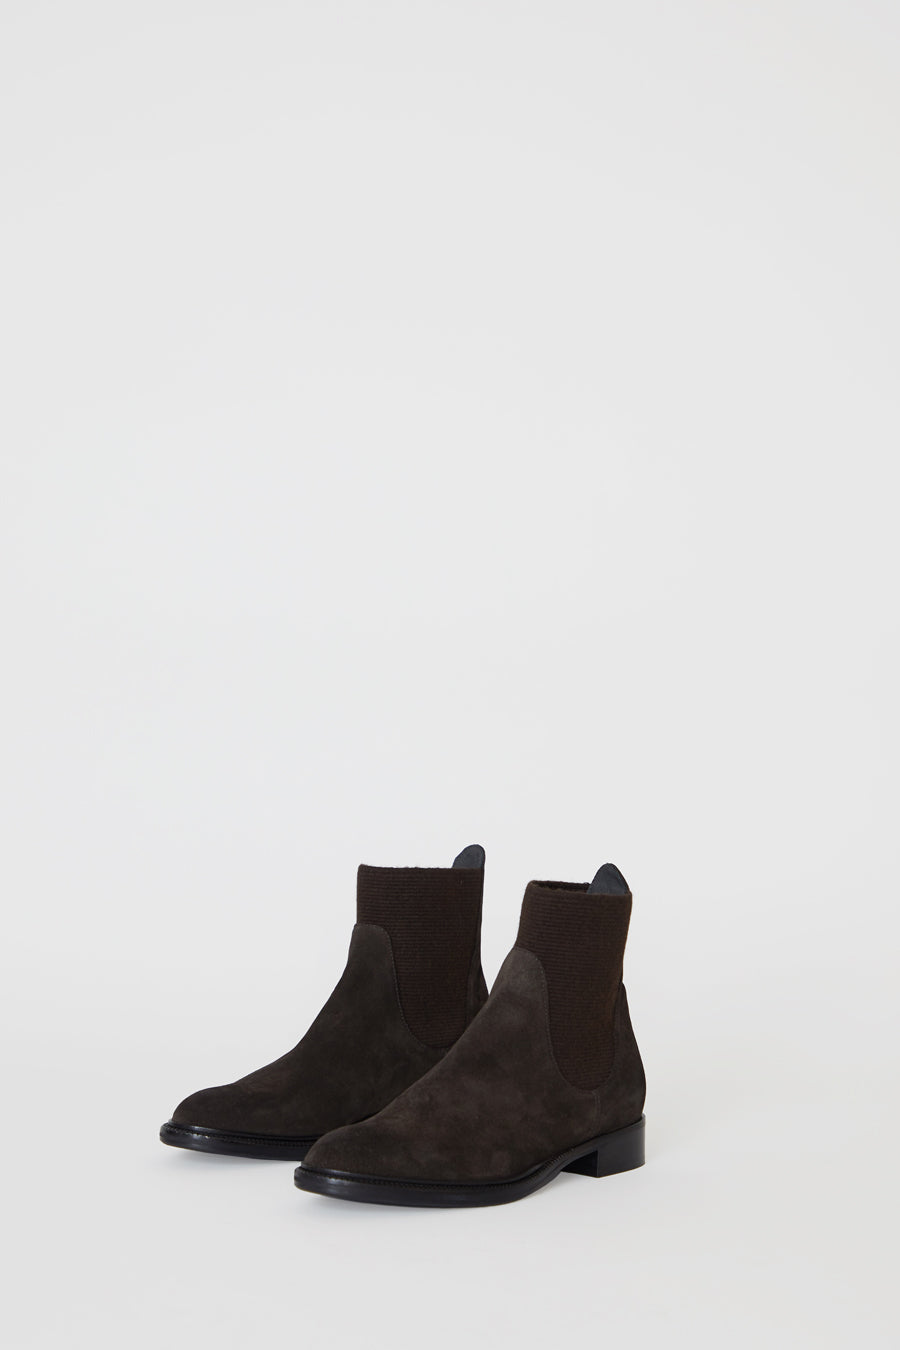 No.6 Flat Suede Pull on Boot in Espresso